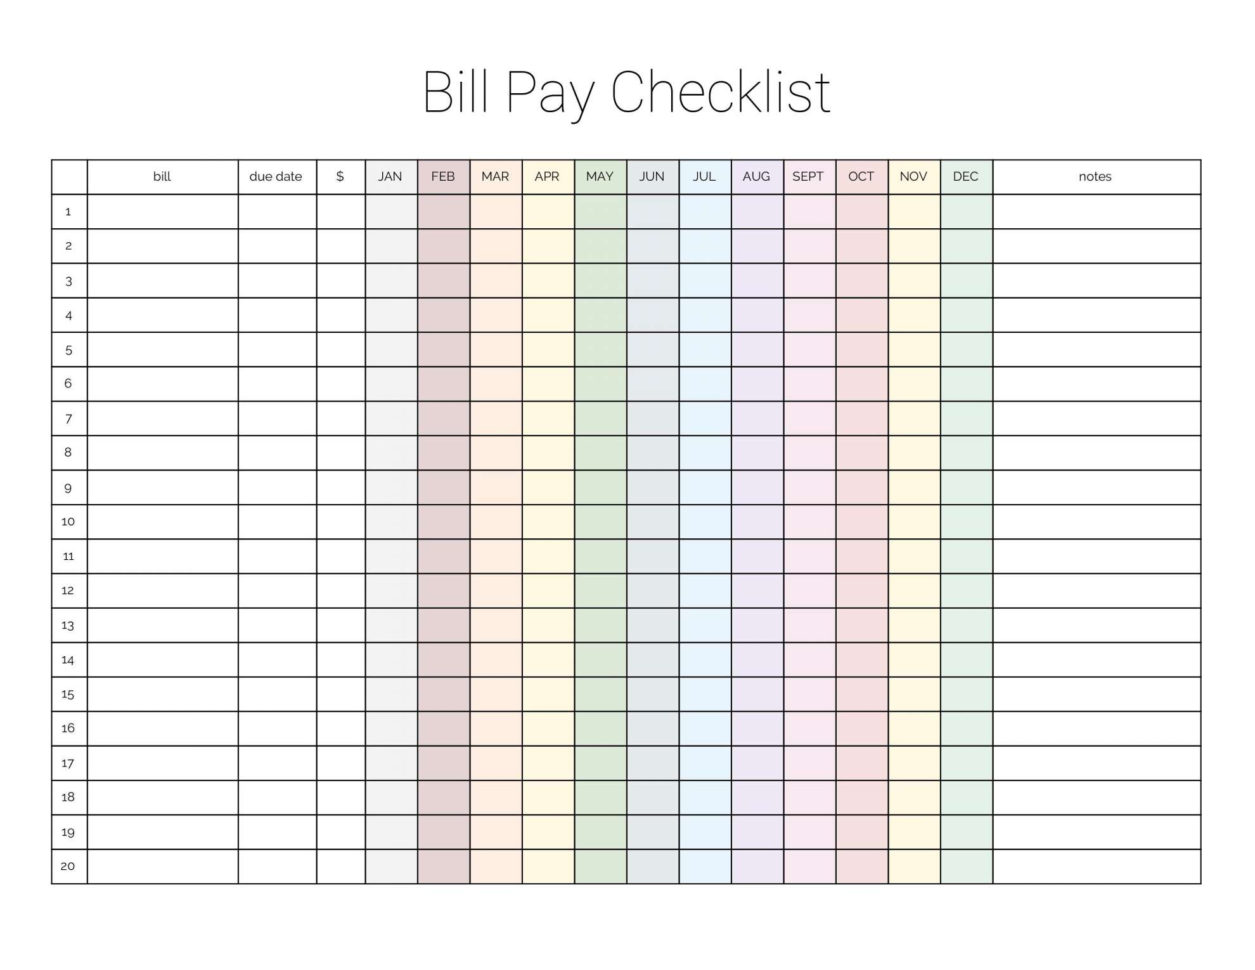 Bill Pay Spreadsheet For Debt Reductiont With Bill Pay Checklist Editable Pdf Of Paying